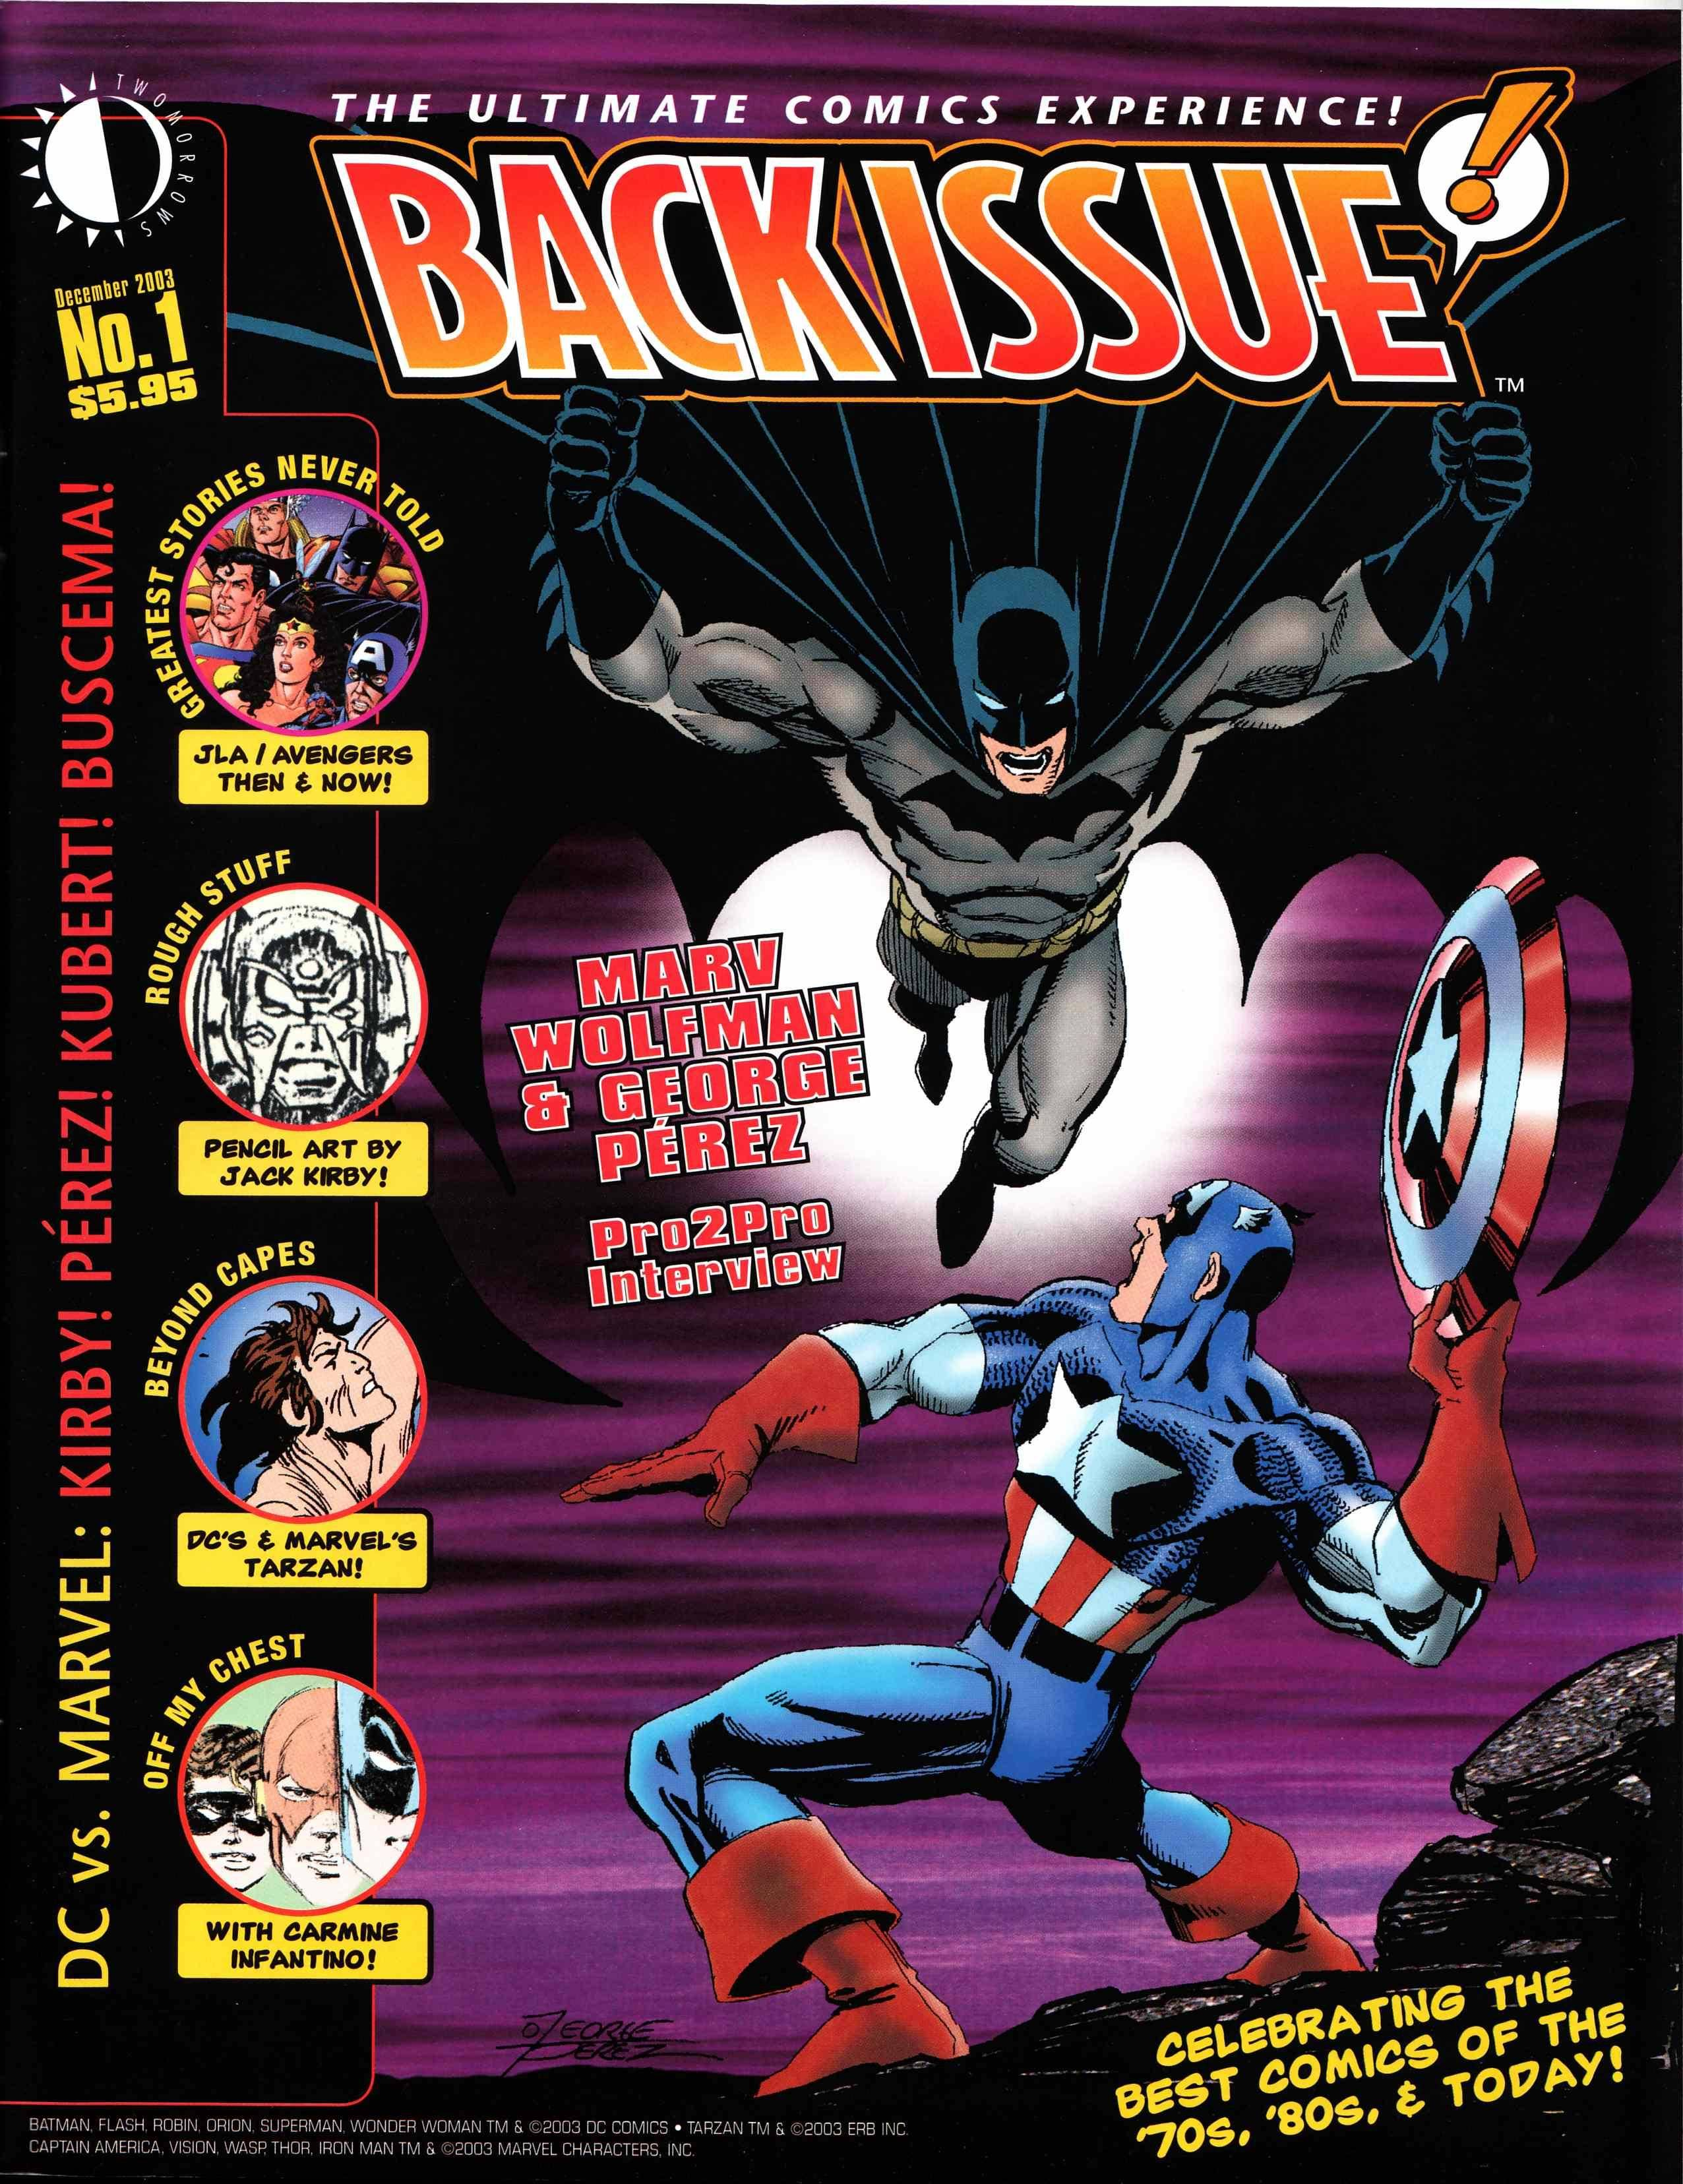 Back Issue 001 2003